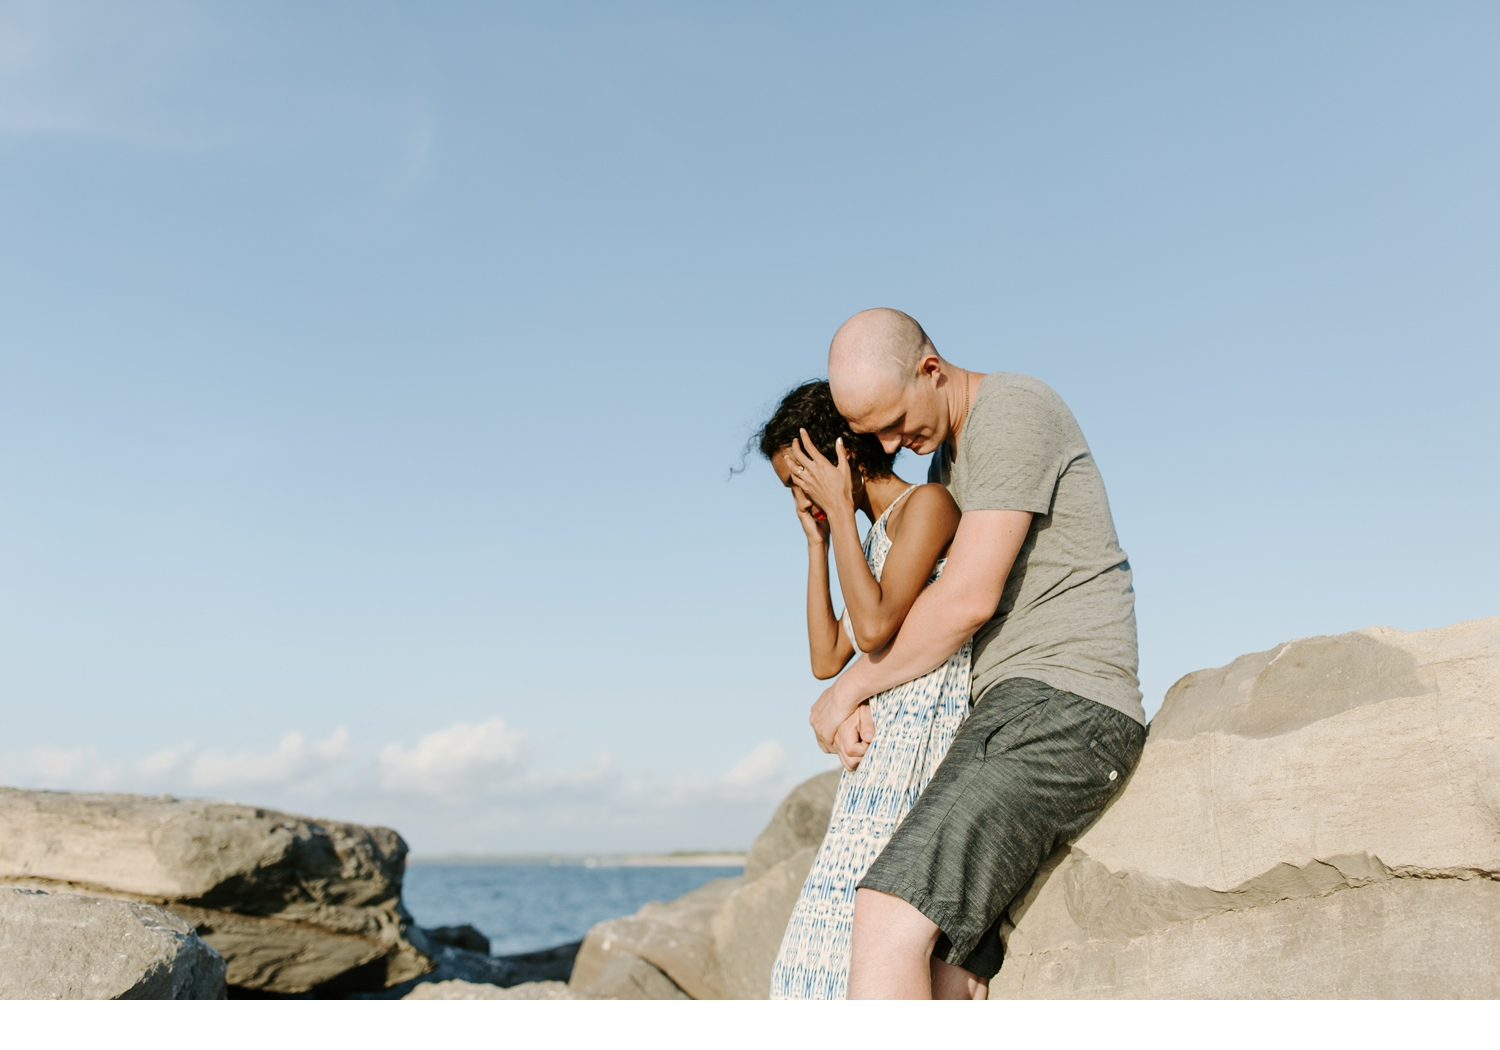 st-andrews-engagement-photos-arie-and-jared-12.jpg